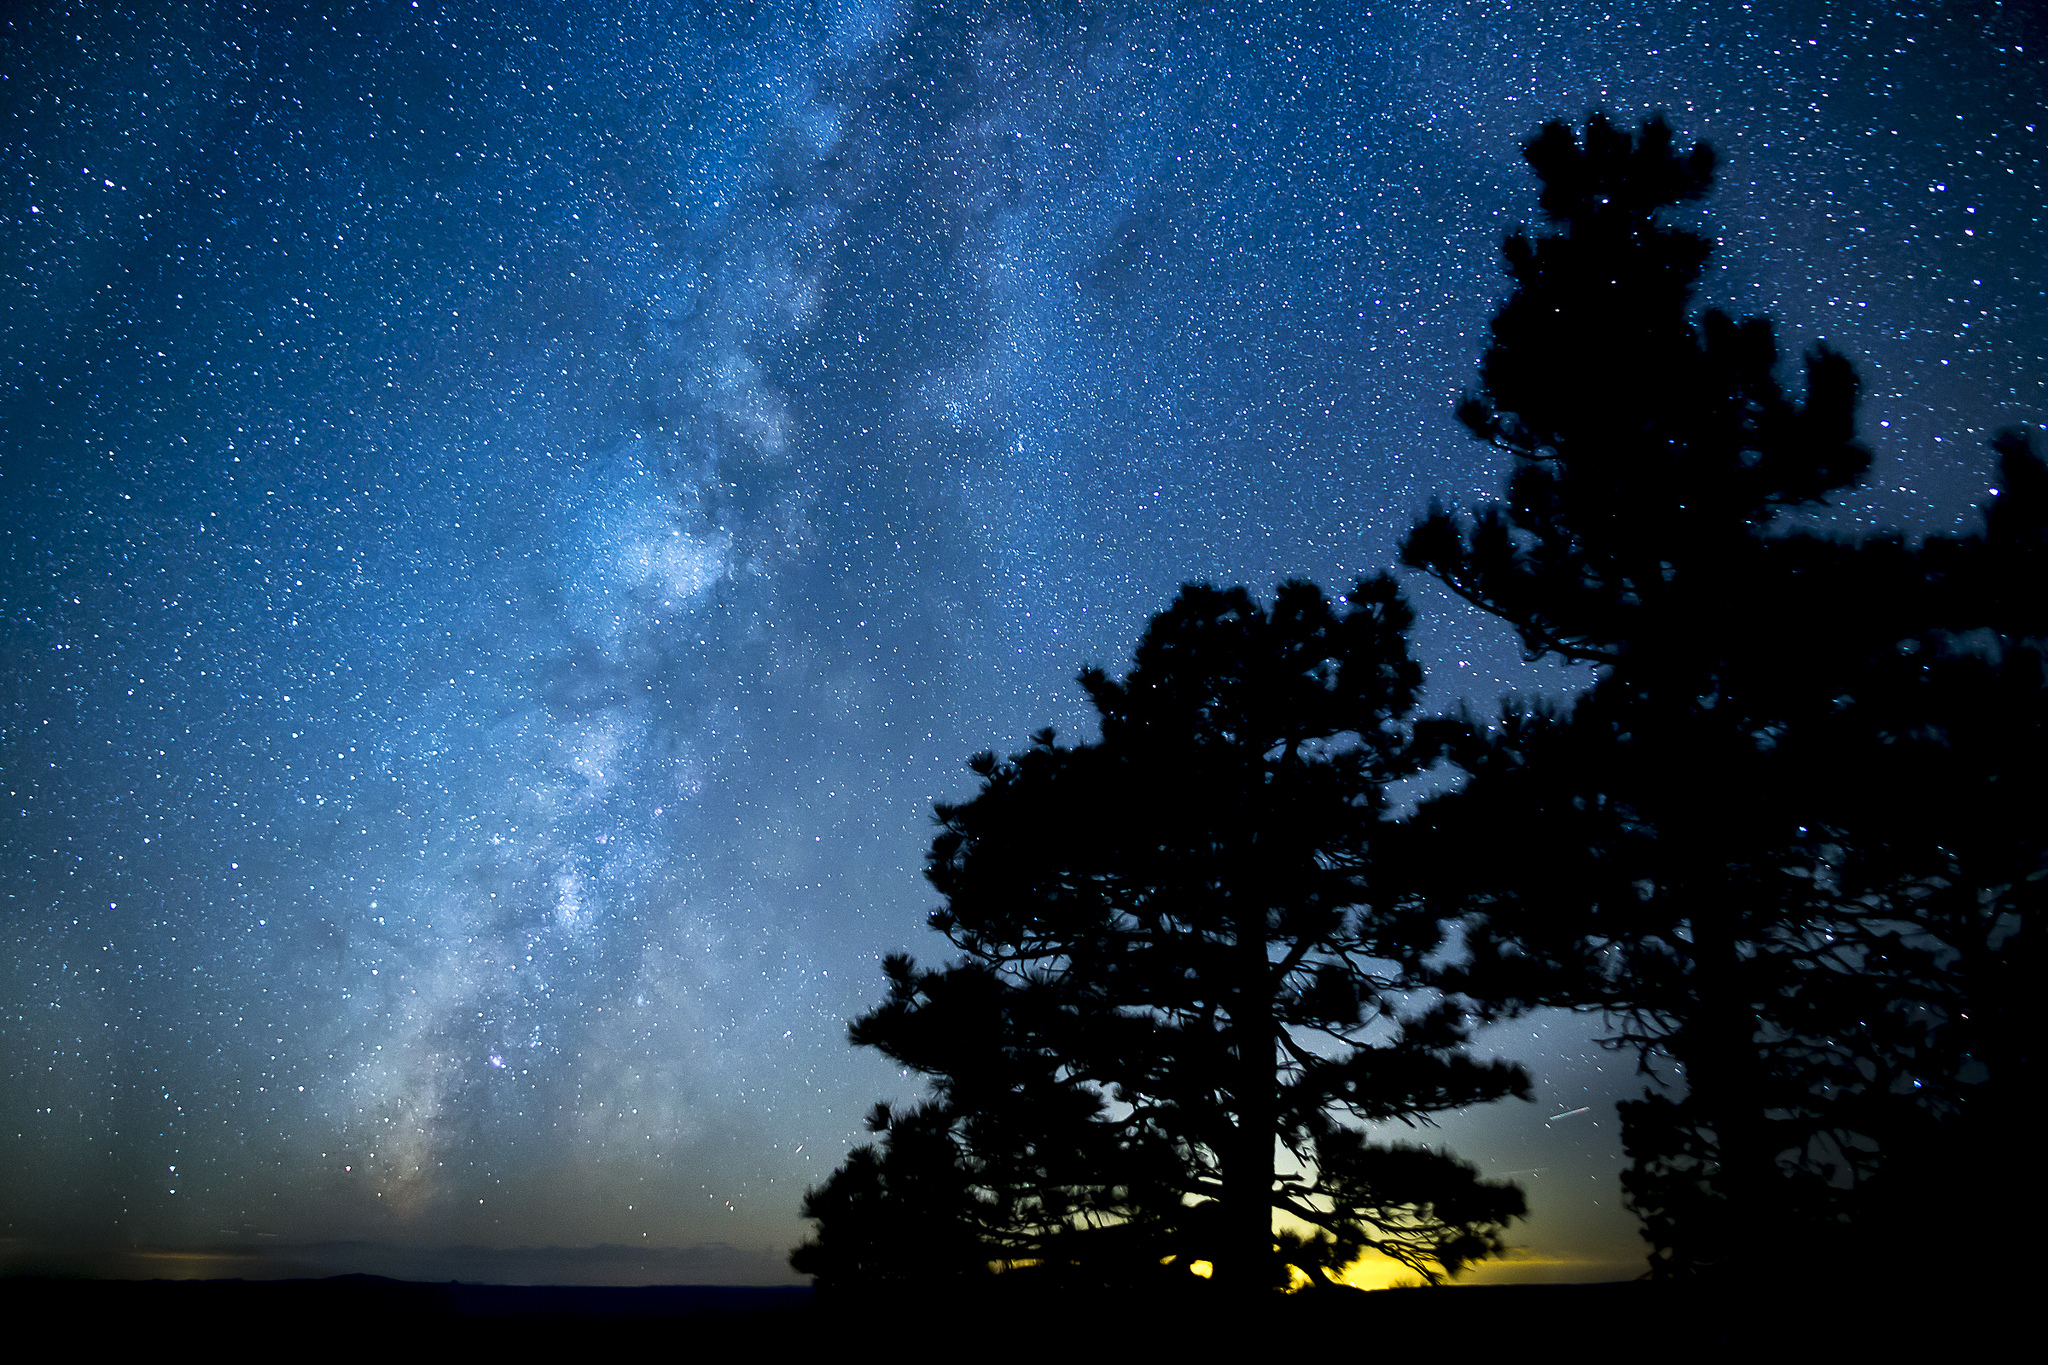 Milky Way and Pine Trees